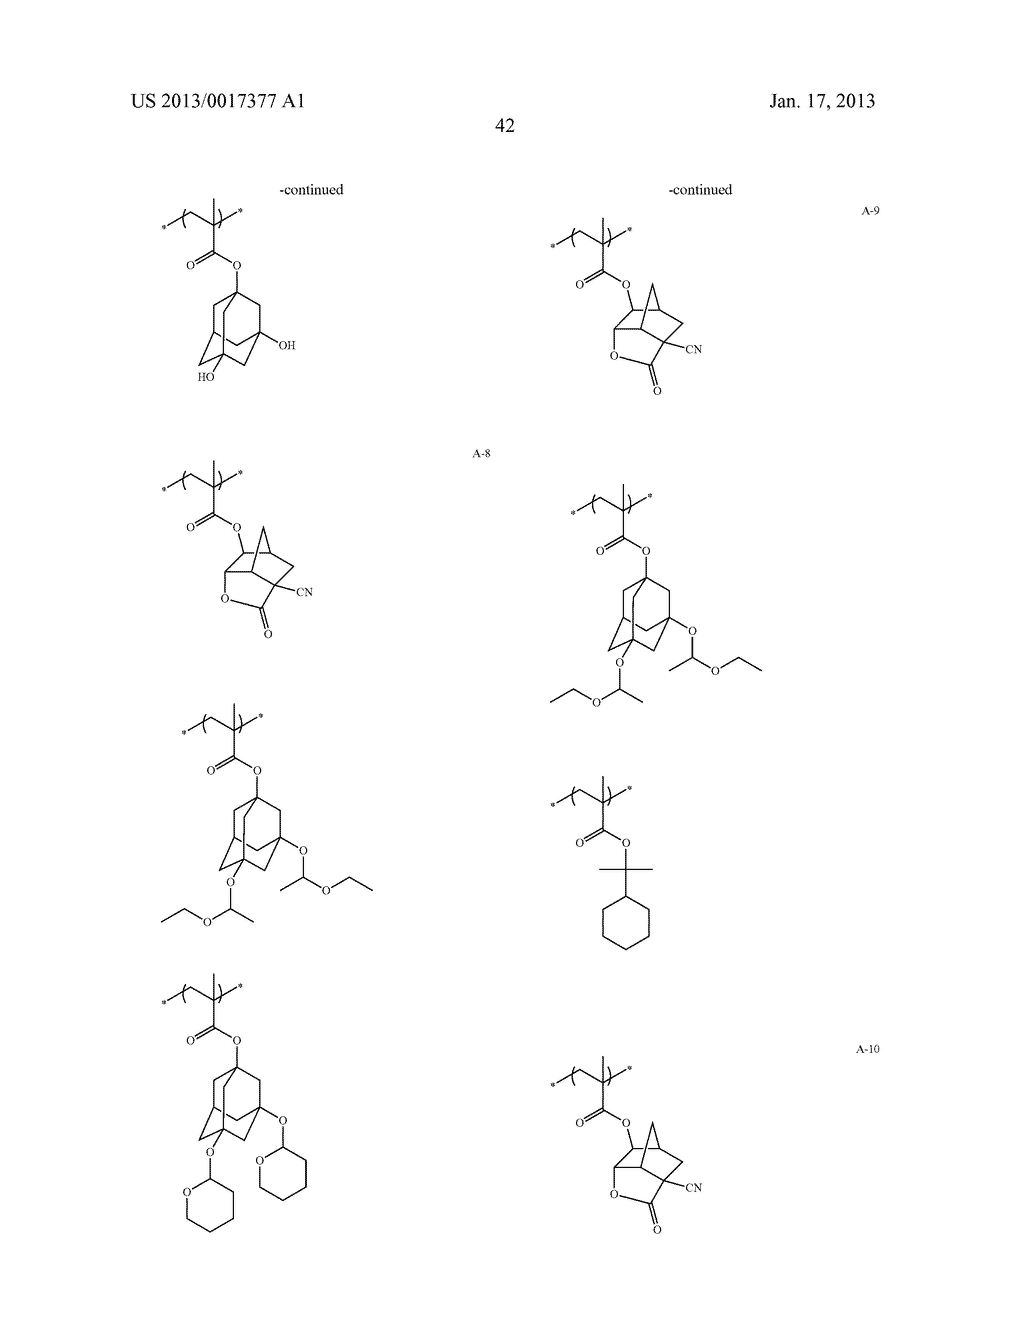 ACTINIC-RAY- OR RADIATION-SENSITIVE RESIN COMPOSITION AND METHOD OF     FORMING PATTERN USING THE SAMEAANM Kataoka; ShoheiAACI ShizuokaAACO JPAAGP Kataoka; Shohei Shizuoka JPAANM Iwato; KaoruAACI ShizuokaAACO JPAAGP Iwato; Kaoru Shizuoka JPAANM Kamimura; SouAACI ShizuokaAACO JPAAGP Kamimura; Sou Shizuoka JPAANM Tsuchihashi; ToruAACI ShizuokaAACO JPAAGP Tsuchihashi; Toru Shizuoka JPAANM Enomoto; YuichiroAACI ShizuokaAACO JPAAGP Enomoto; Yuichiro Shizuoka JPAANM Fujii; KanaAACI ShizuokaAACO JPAAGP Fujii; Kana Shizuoka JPAANM Mizutani; KazuyoshiAACI ShizuokaAACO JPAAGP Mizutani; Kazuyoshi Shizuoka JPAANM Tarutani; ShinjiAACI ShizuokaAACO JPAAGP Tarutani; Shinji Shizuoka JPAANM Kato; KeitaAACI ShizuokaAACO JPAAGP Kato; Keita Shizuoka JP - diagram, schematic, and image 43